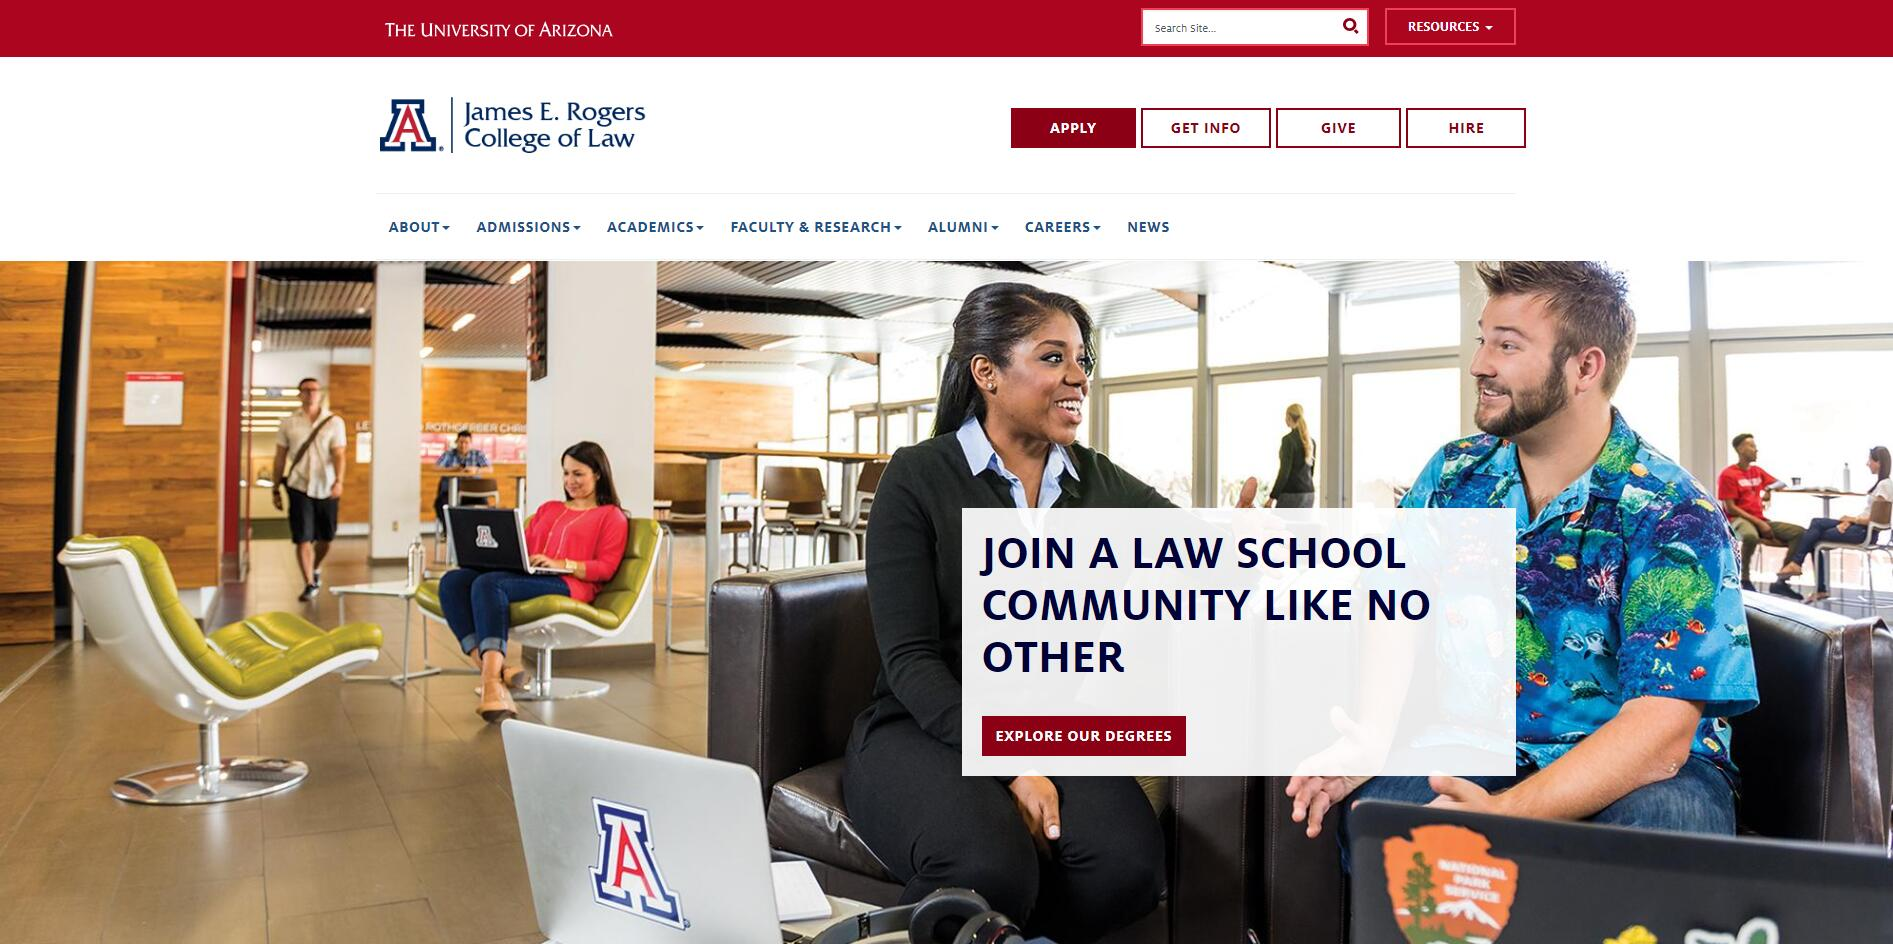 The James E. Rogers College of Law at University of Arizona